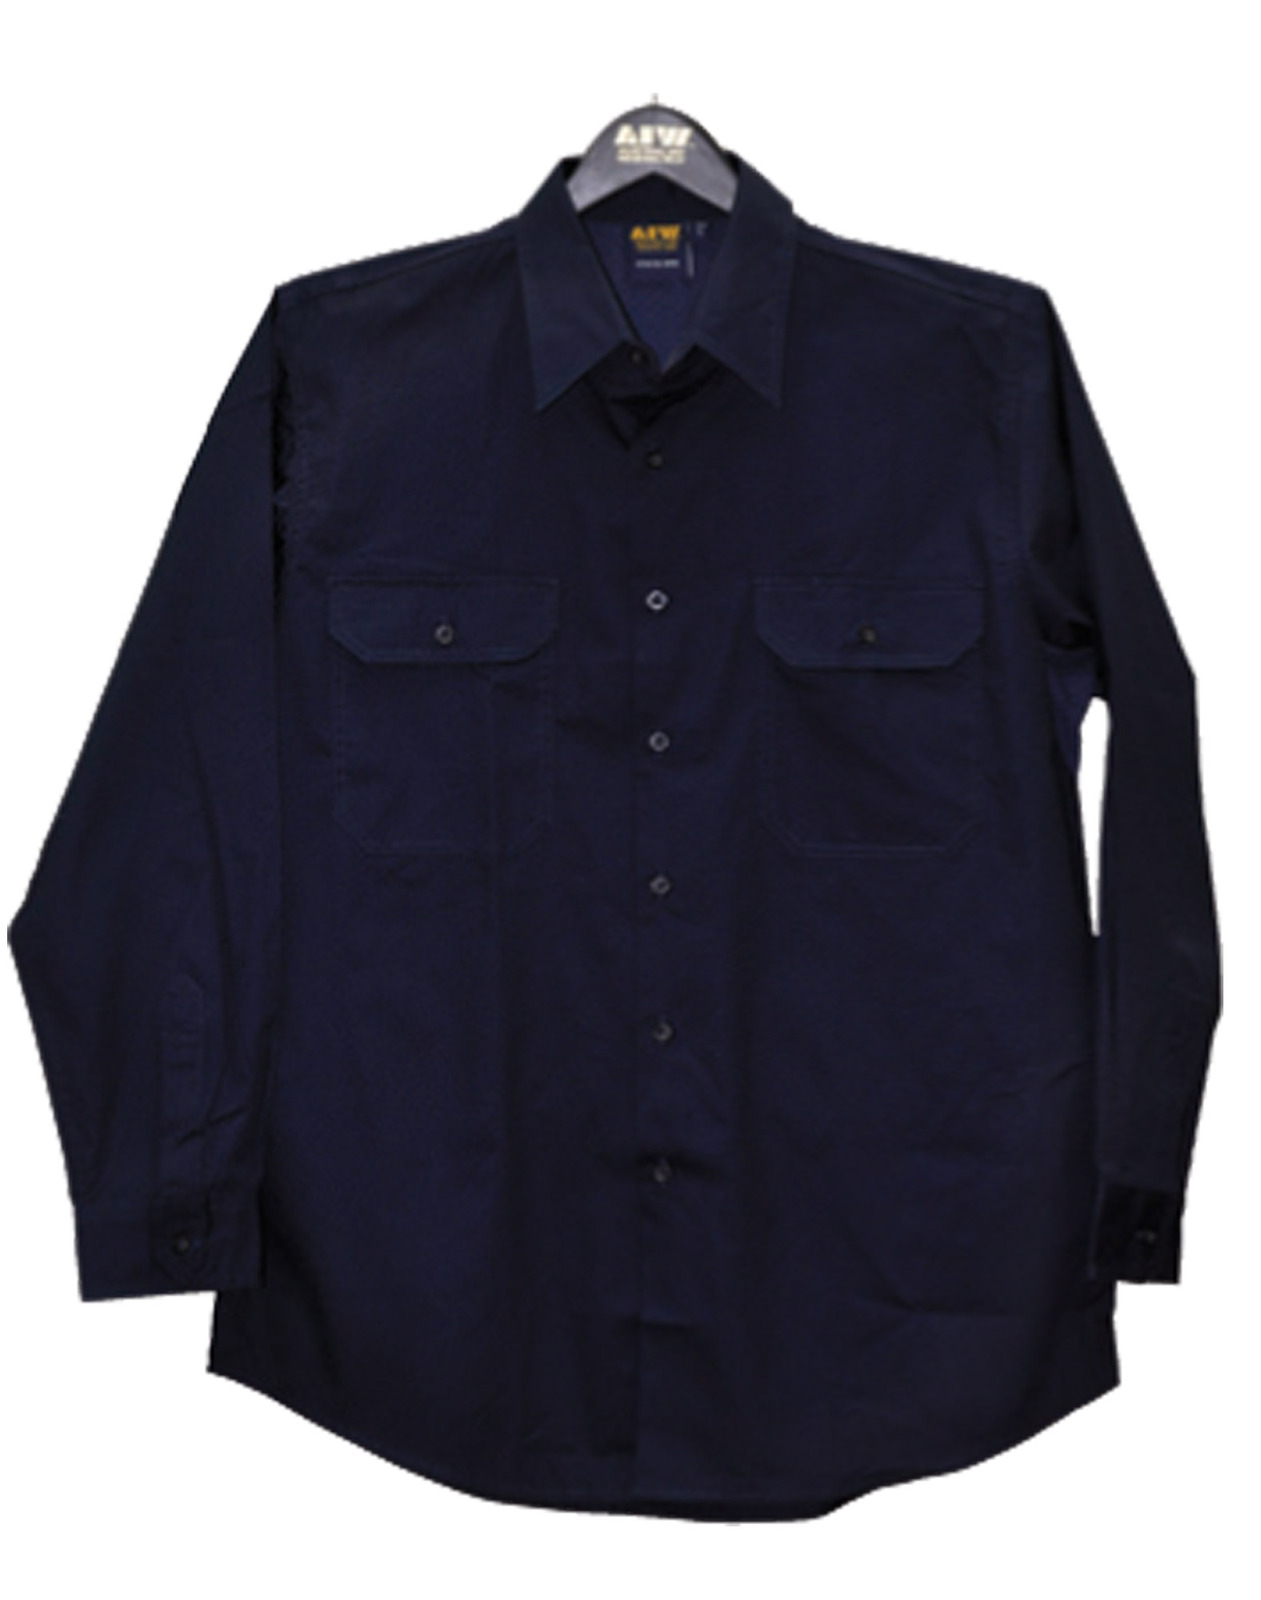 5 of aiw wt02 work shirt 100 cotton twill for 100 cotton work shirts